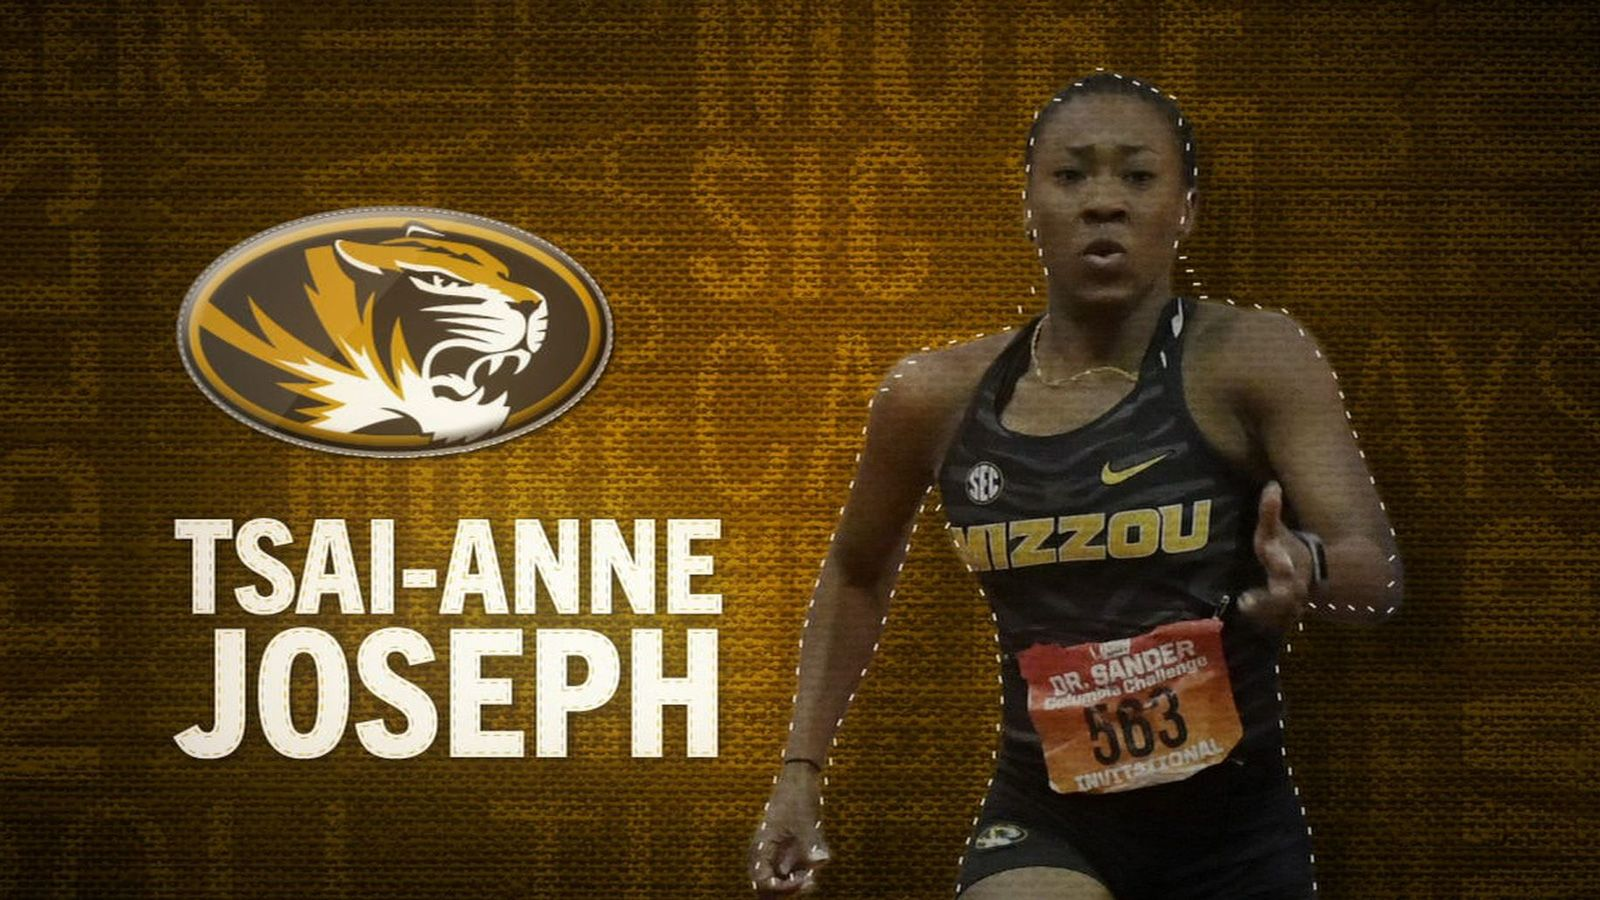 I am the SEC: Missouri's Tsai-Anne Joseph